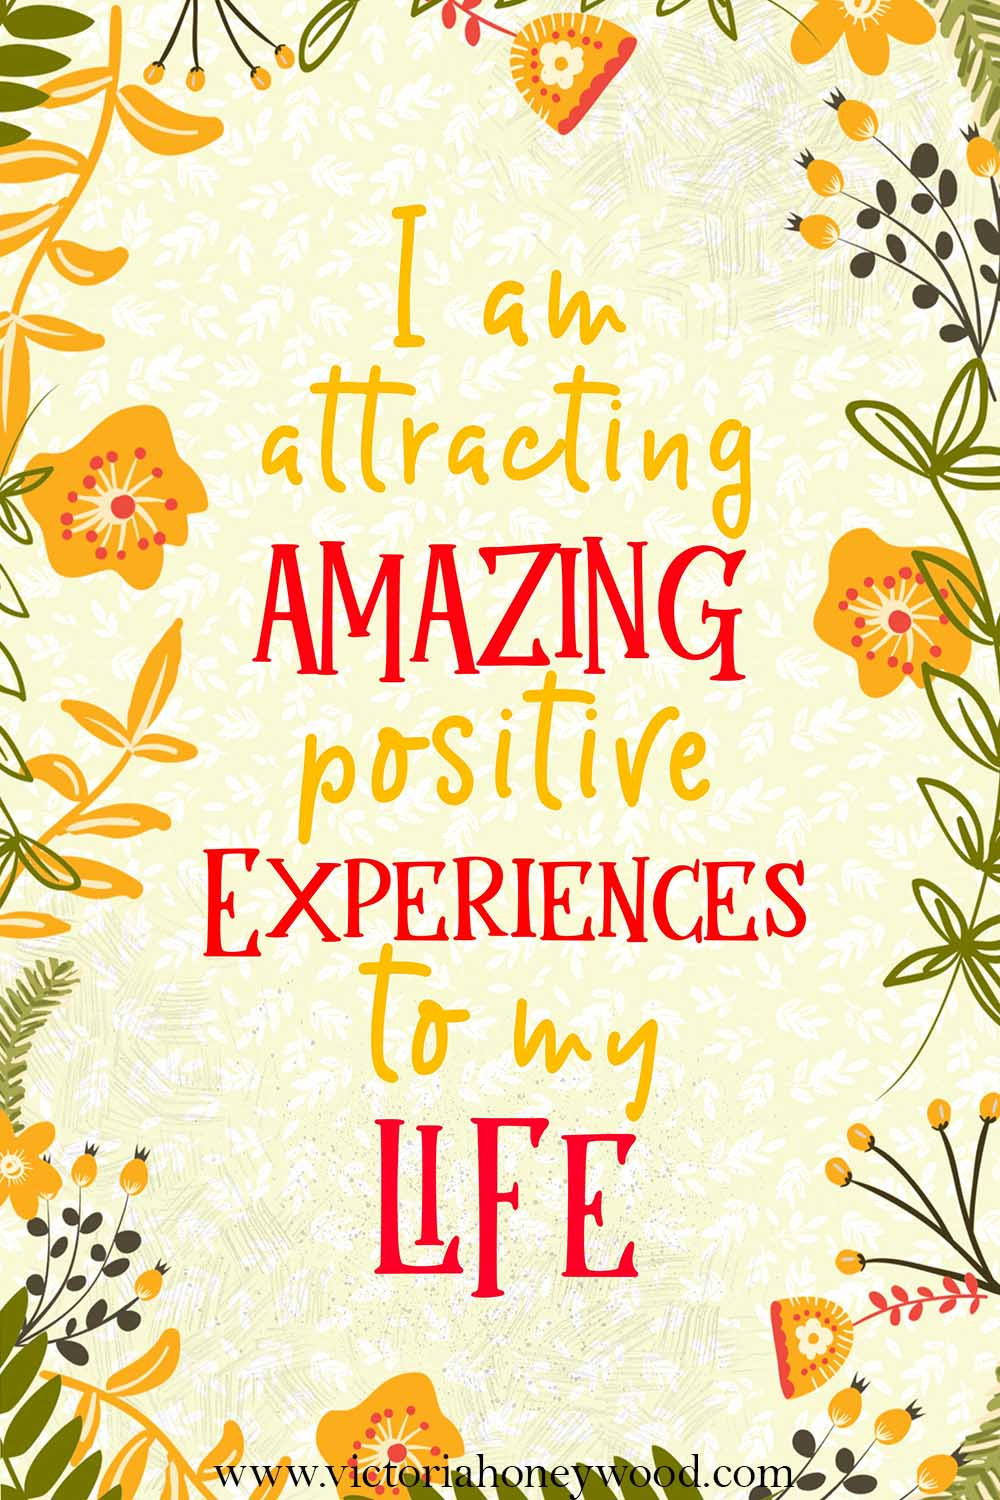 I am attracting amazing positive experiences to my life